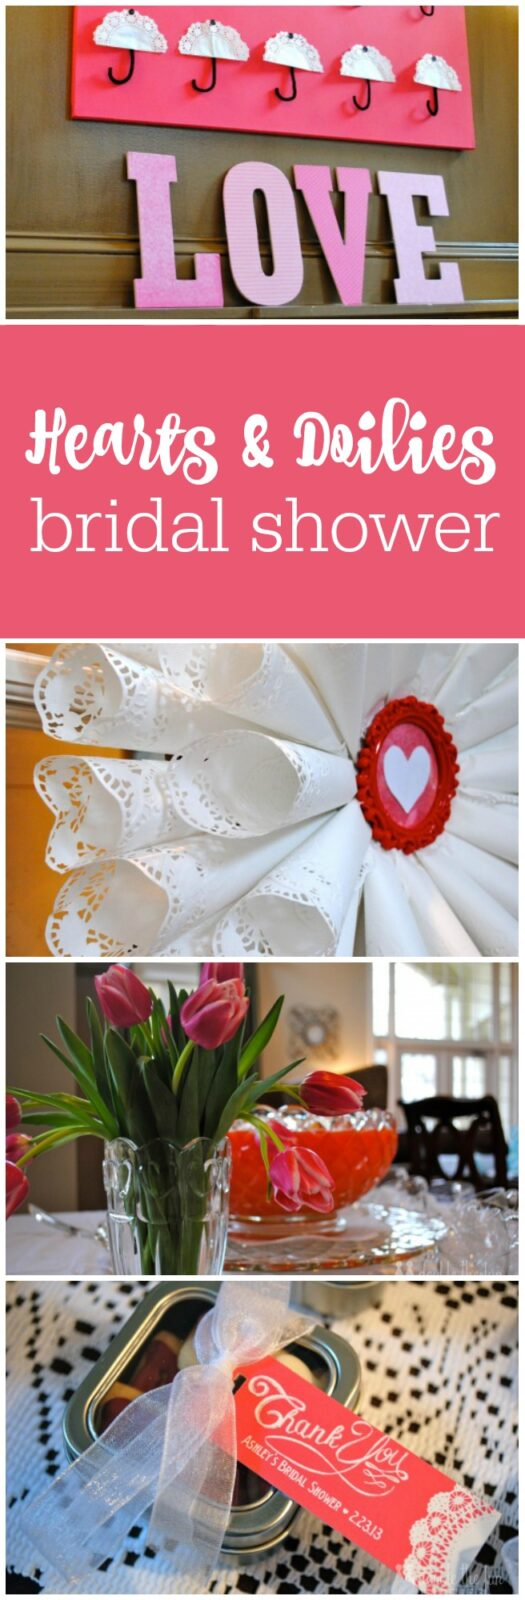 Hearts and doilies bridal shower by The Party Teacher